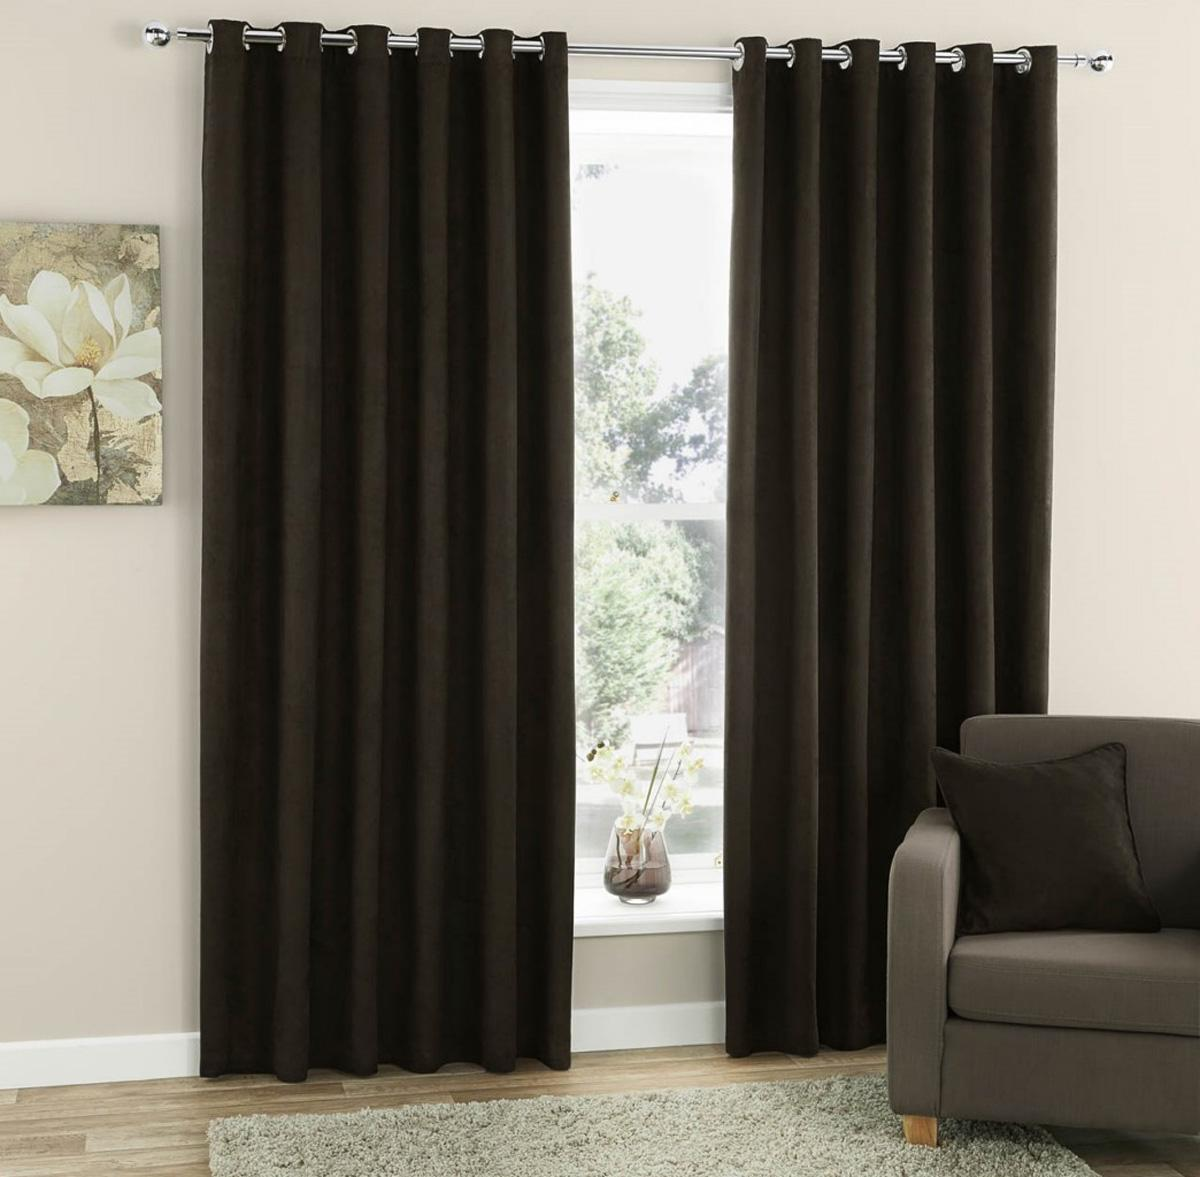 Stockists of Chocolate Faux Suede Ready Made Eyelet Curtains